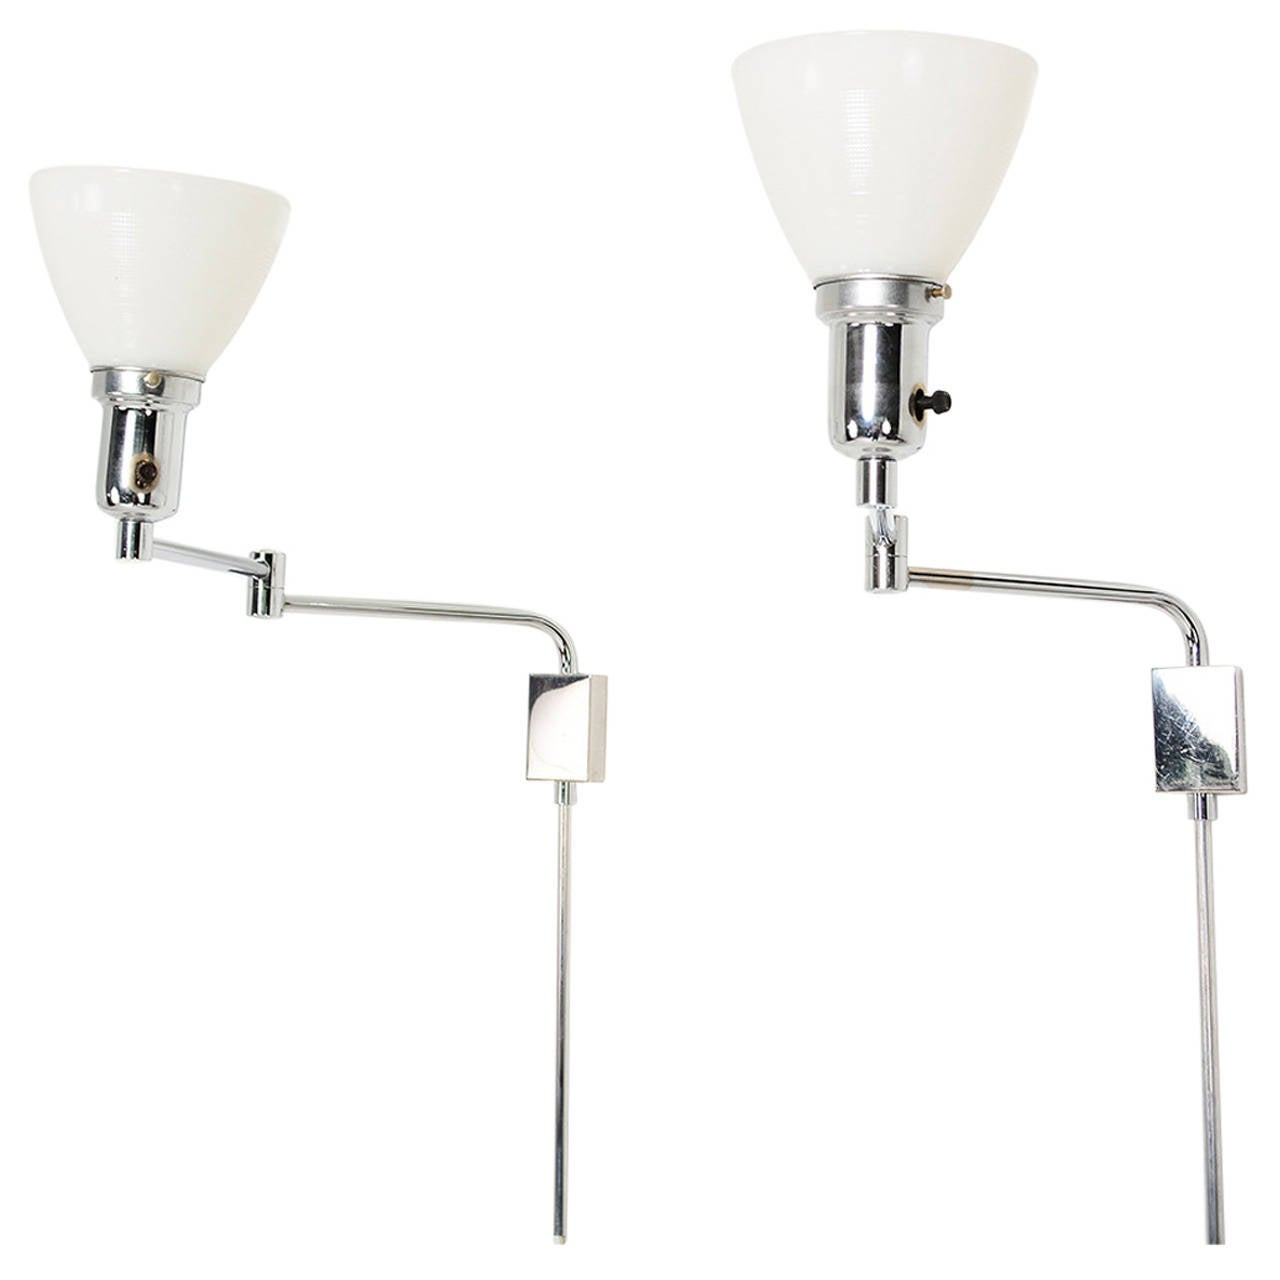 Pair of Mid Century Modern Chrome-Plated Wall Sconces